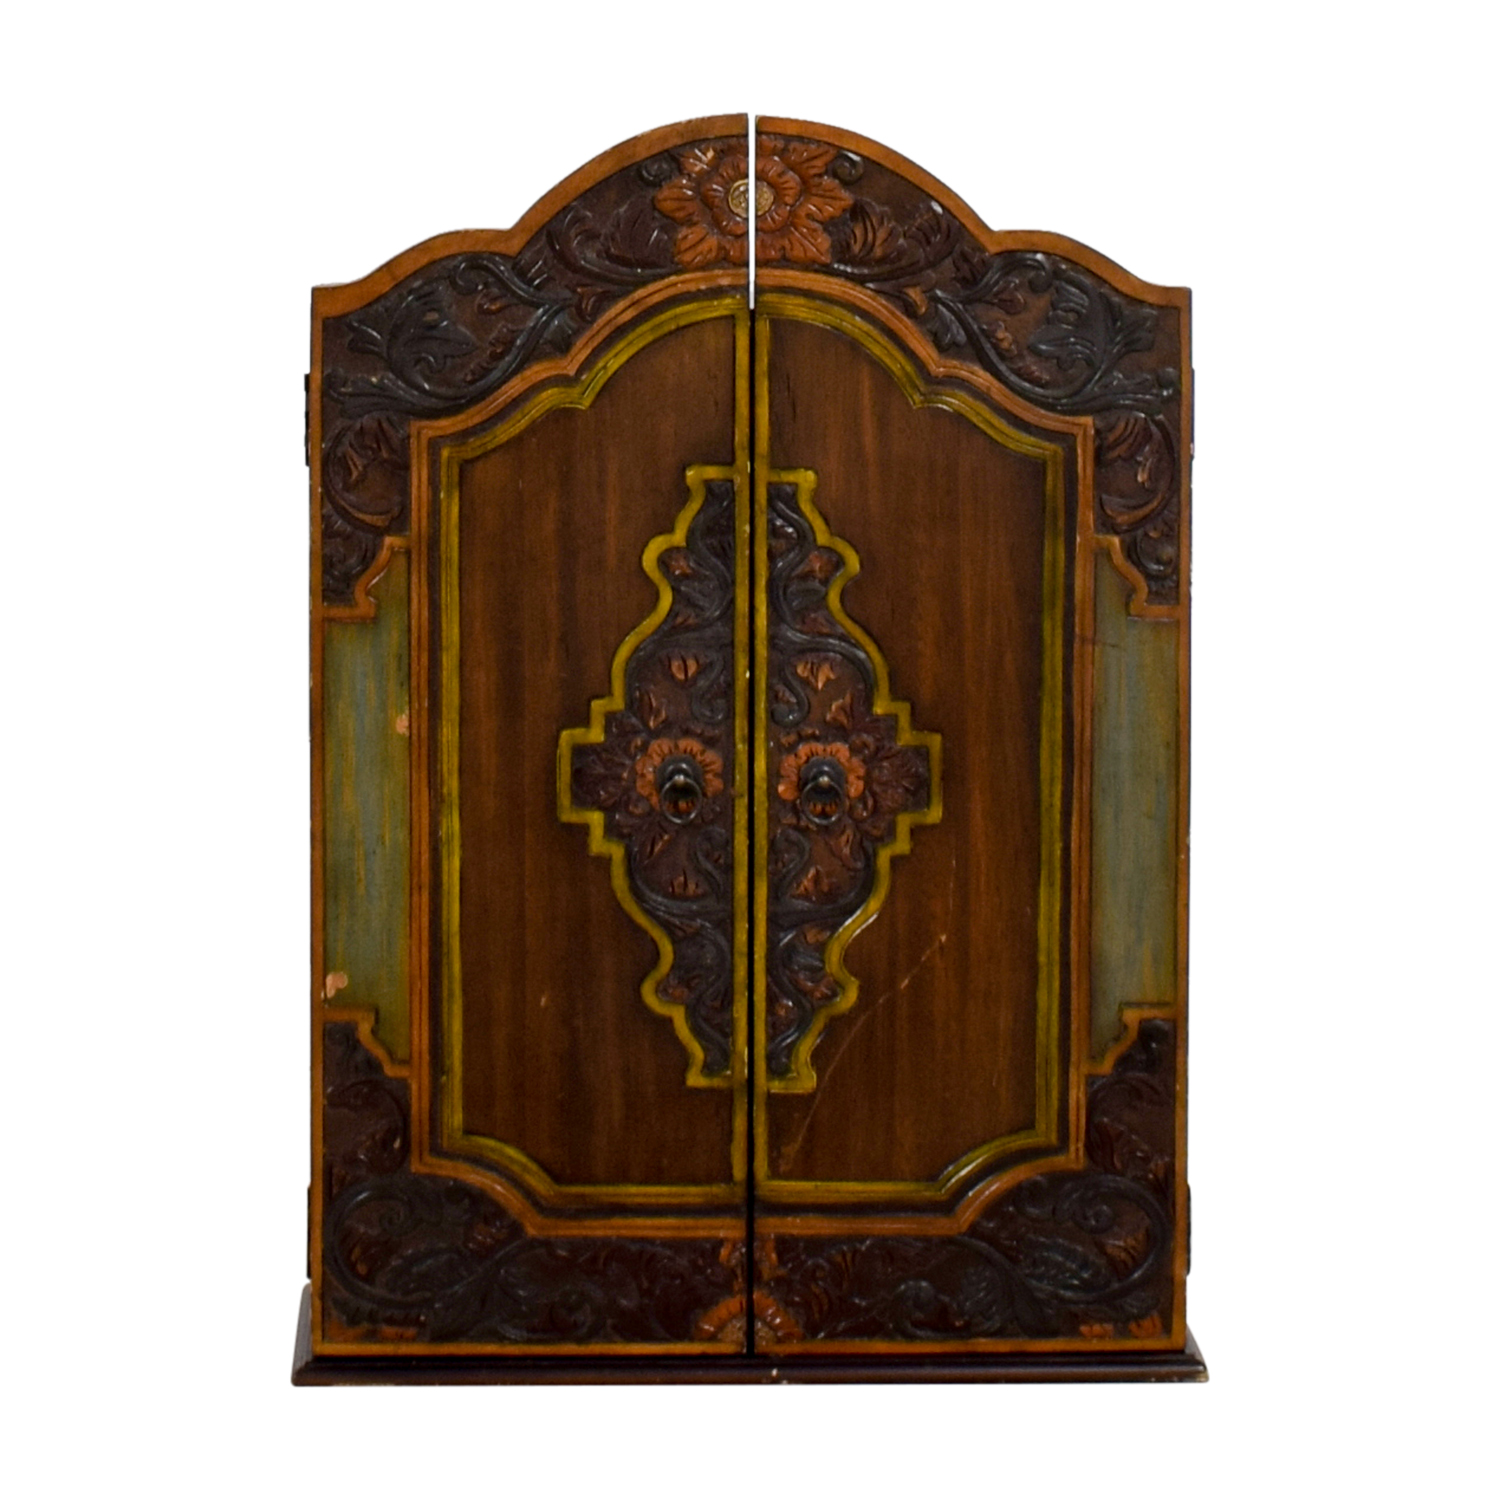 Pier 1 Imports Pier 1 Imports Carved Wood Jewelry Cabinet on sale